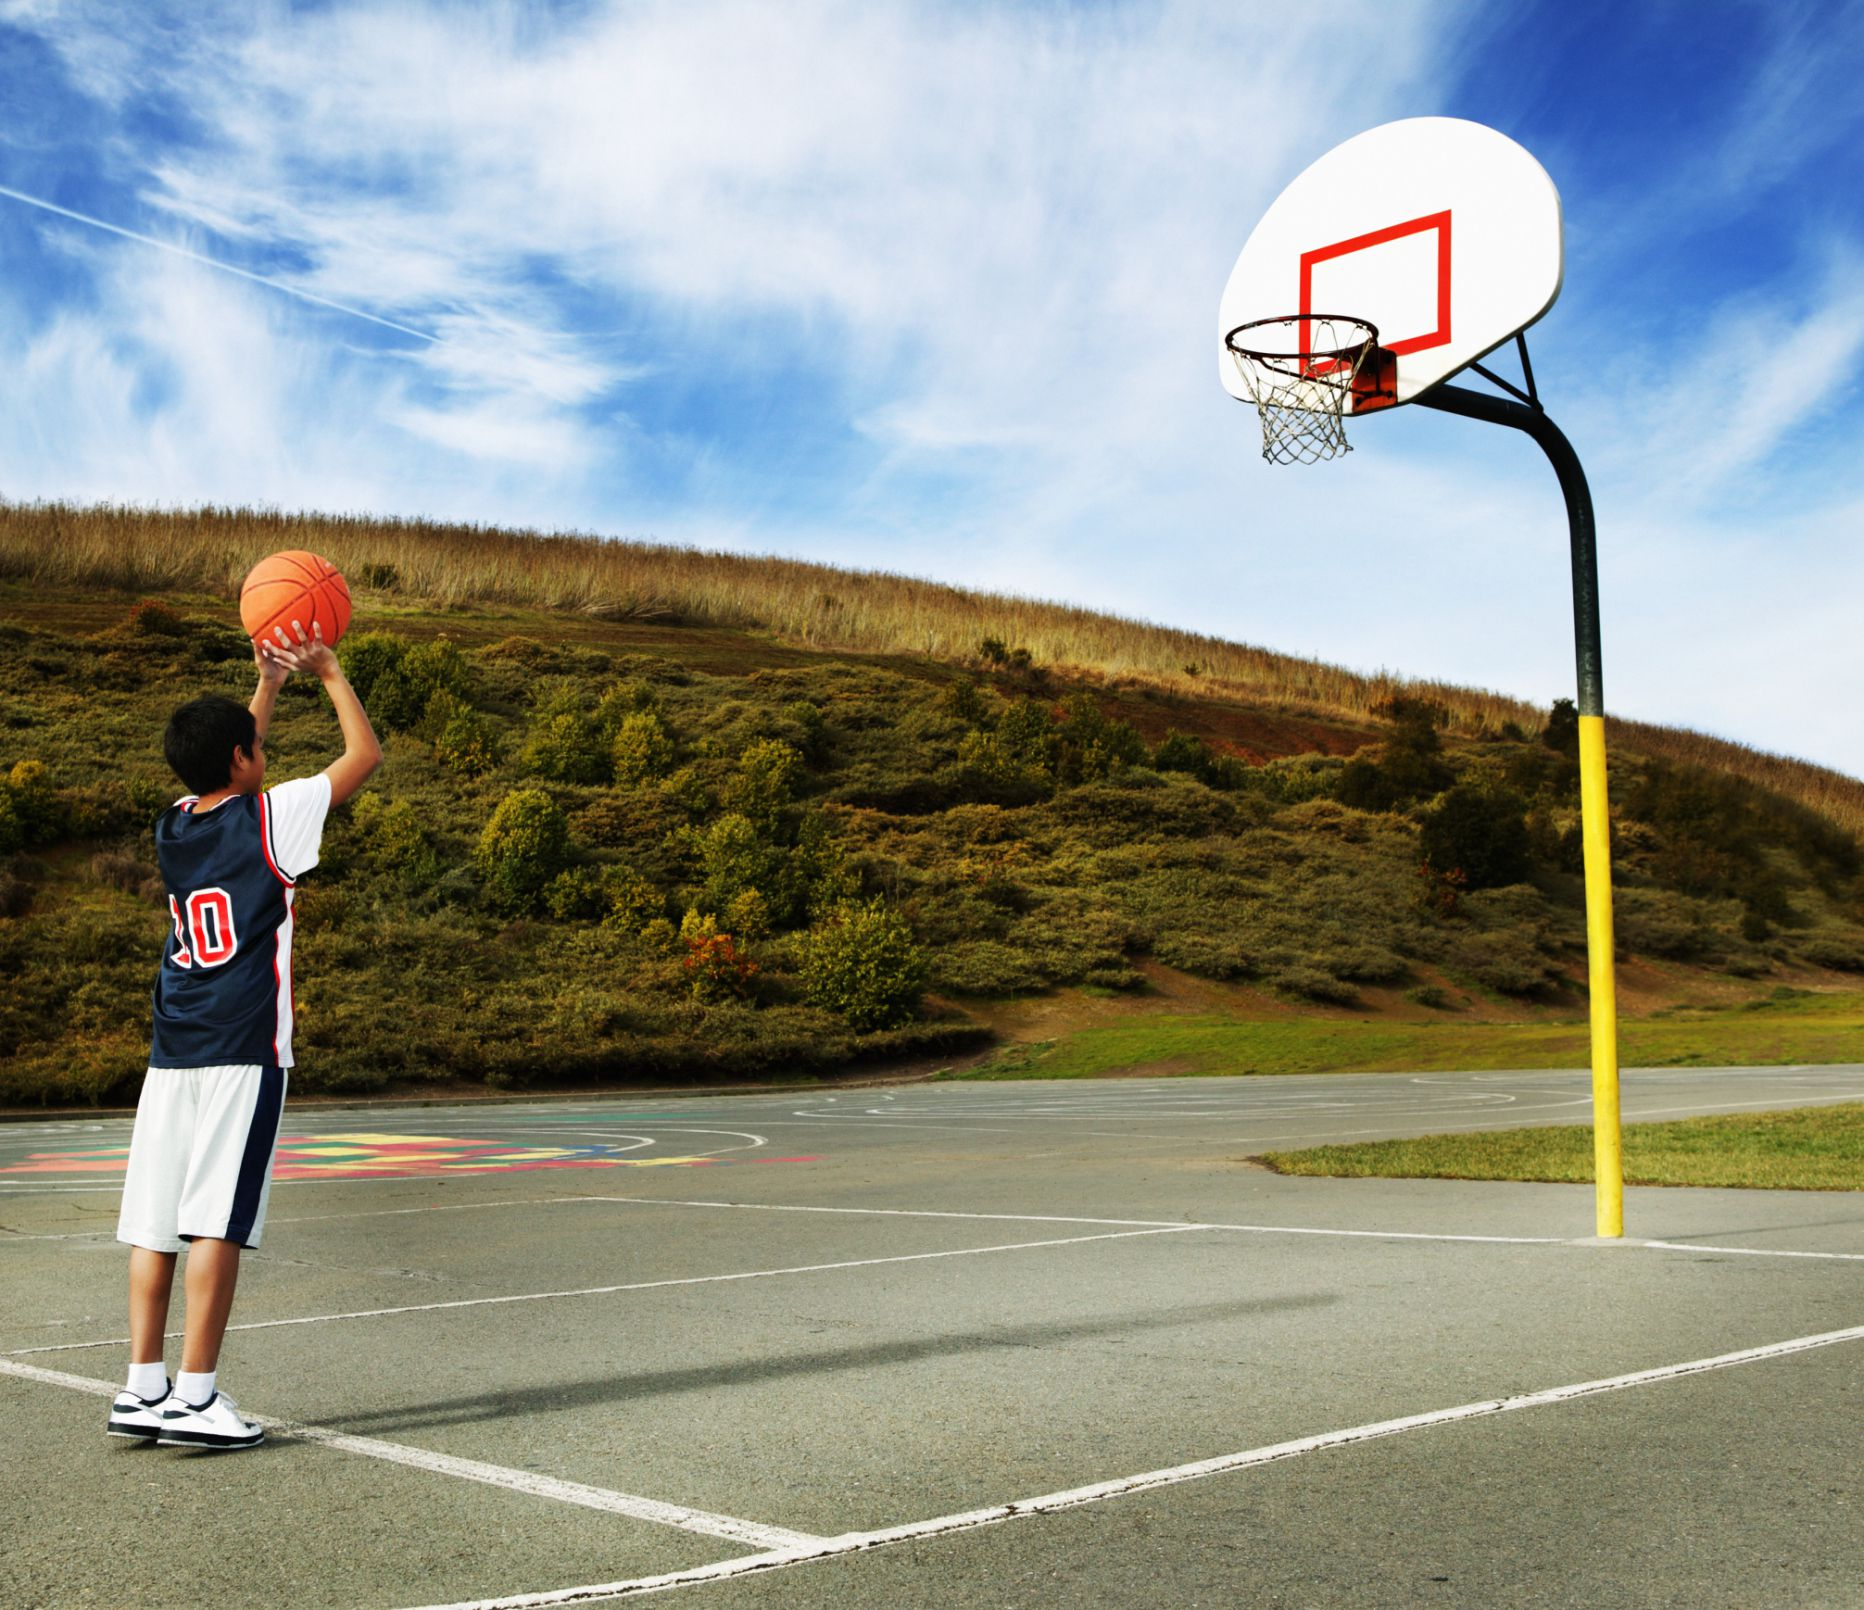 process essay on how to shoot a basketball How to write an outline for process essay shooting a three-pointer in basketball practice the shot until you feel the release is quick and natural.